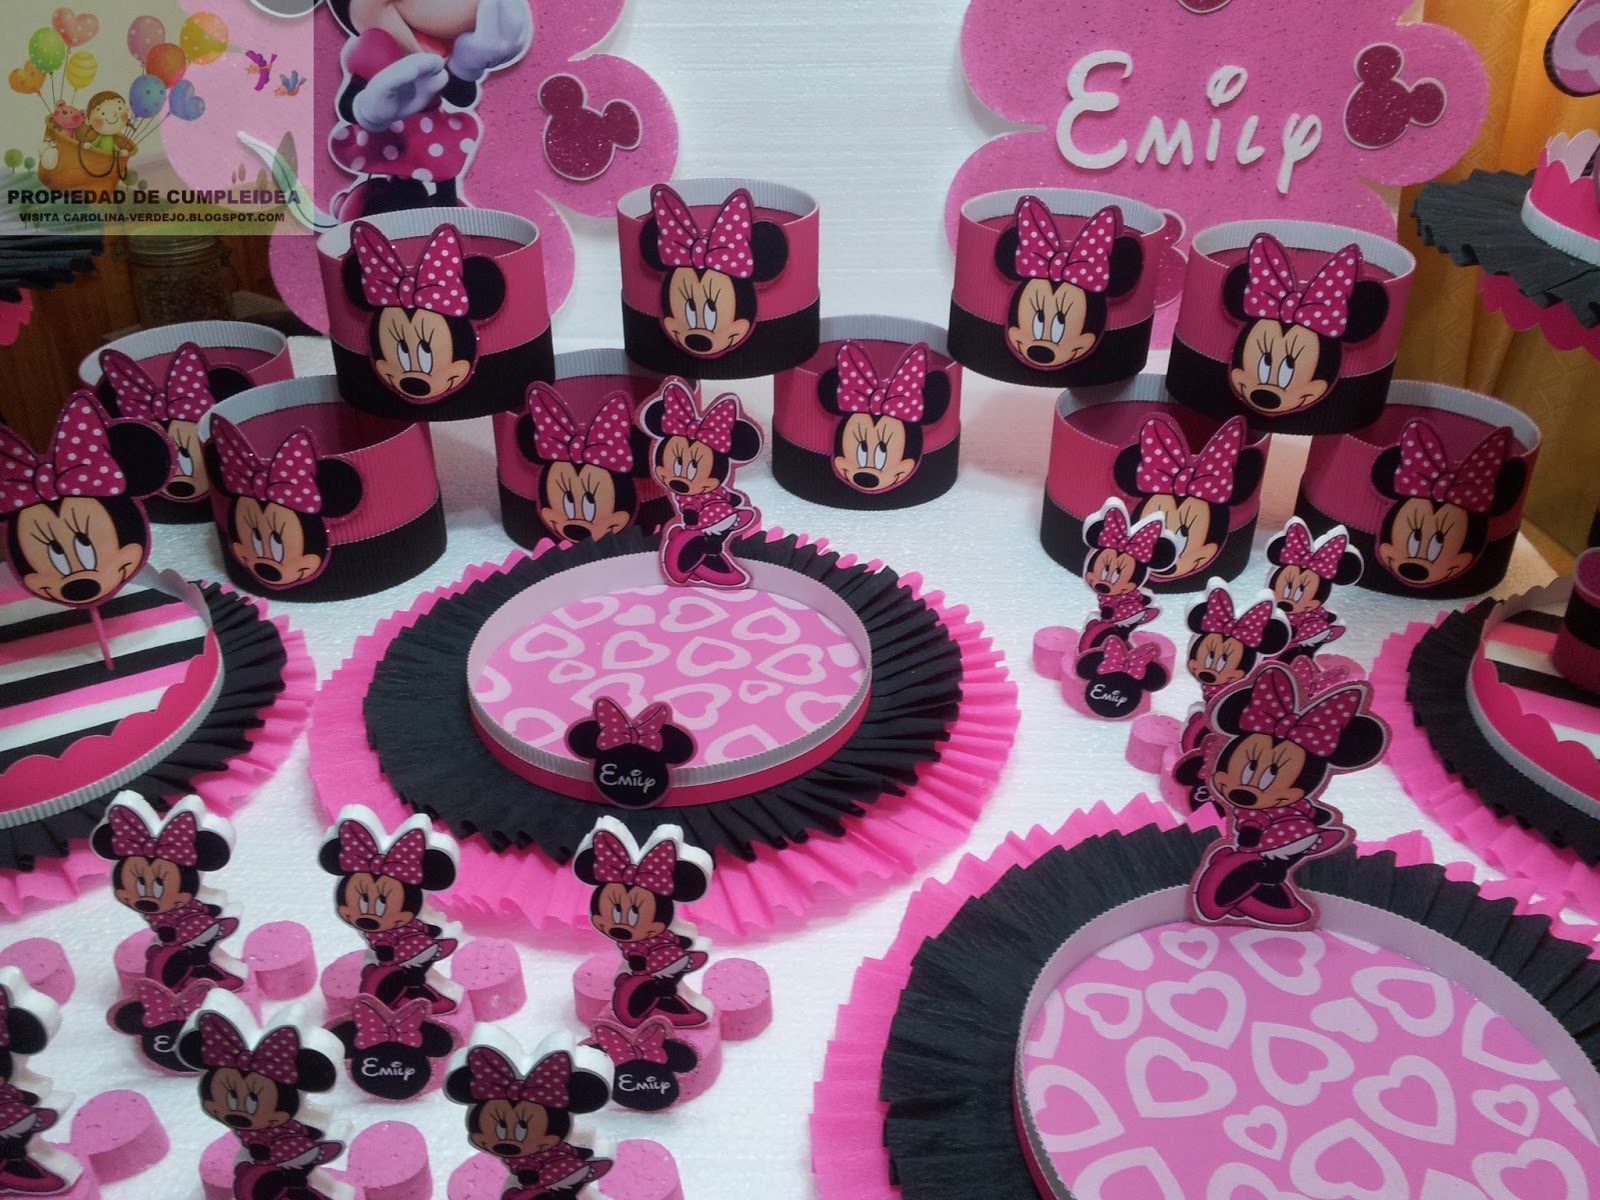 Minnie Decoraciones Para Fiestas ~ DECORACIONES INFANTILES MINNIE MOUSE